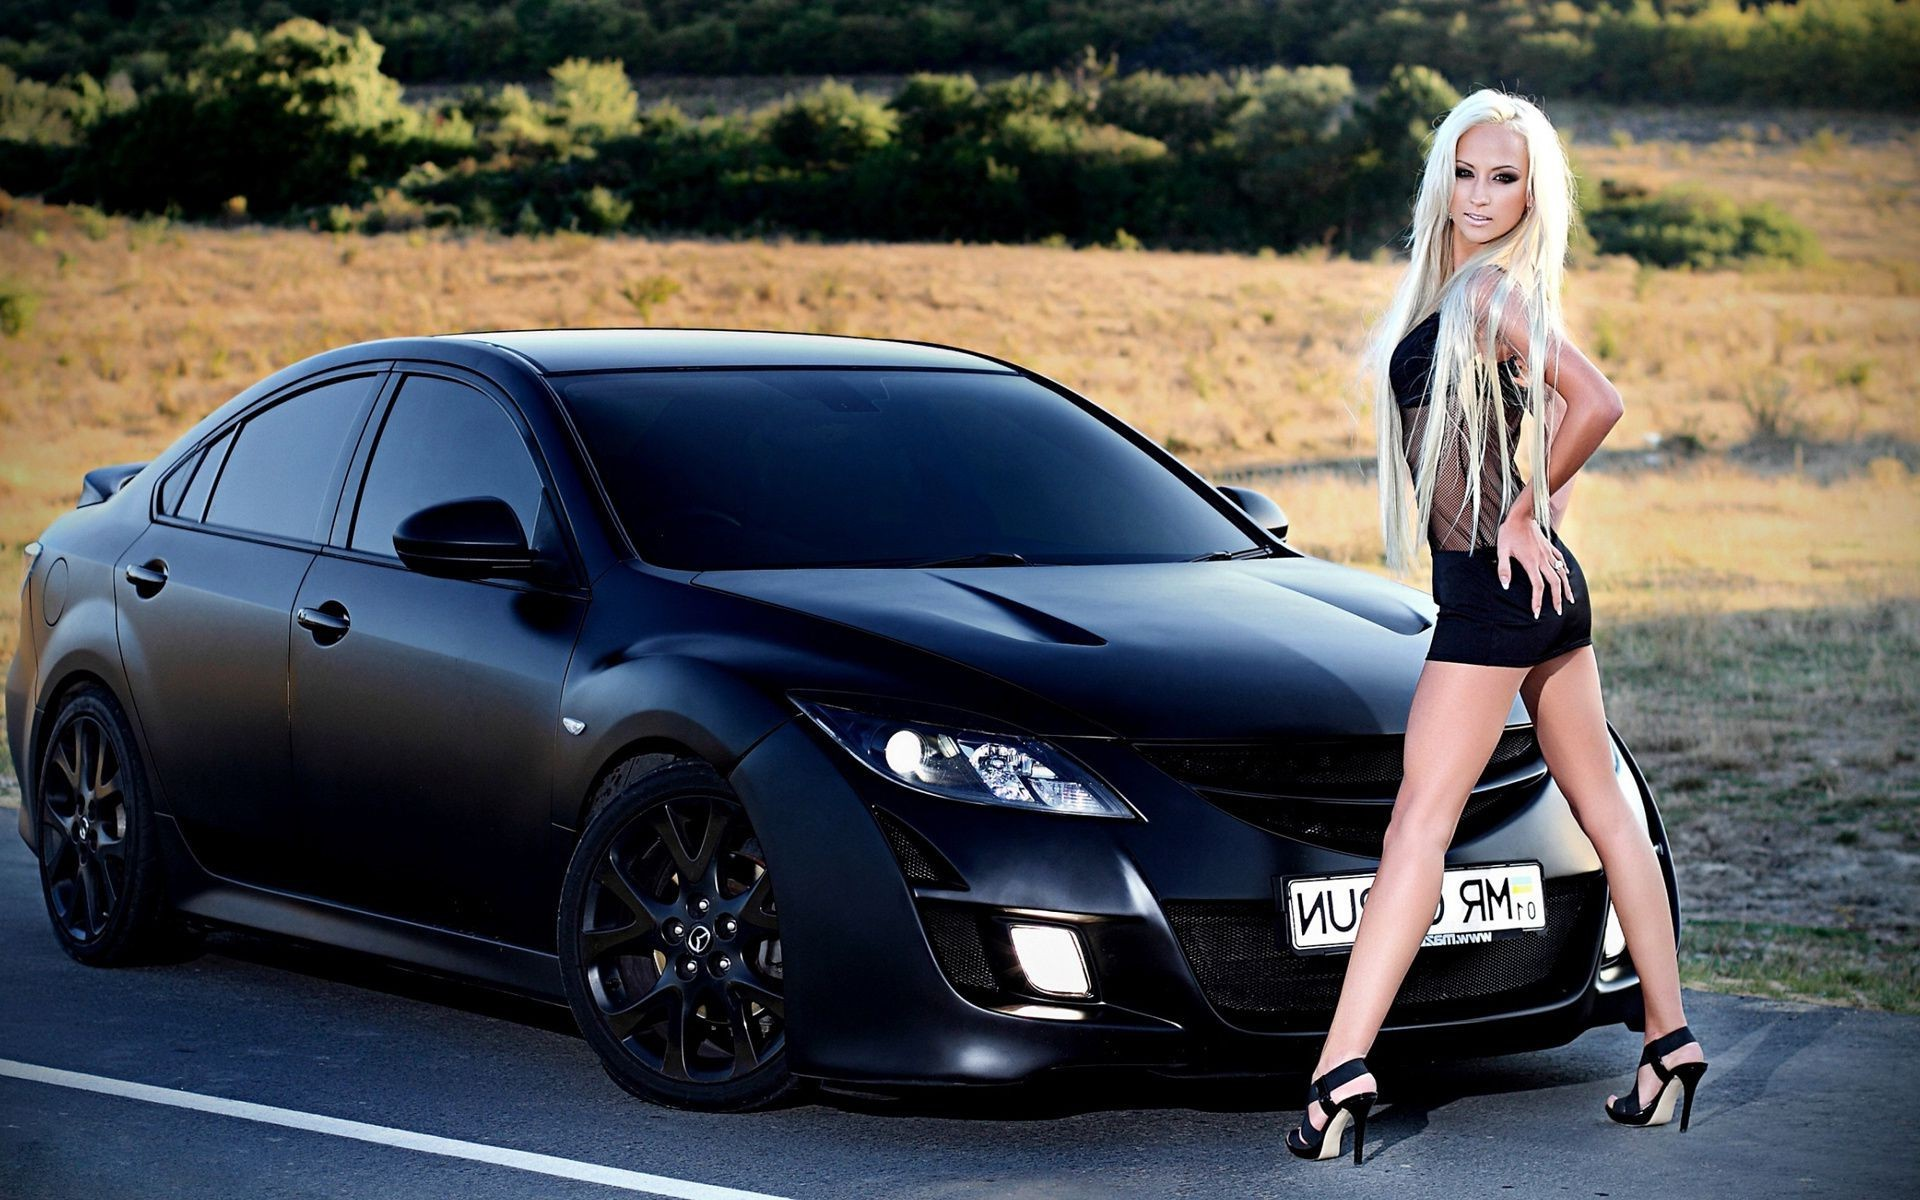 Muscle Car Wallpaper Iphone 6 Car Girl Wallpapers 71 Images